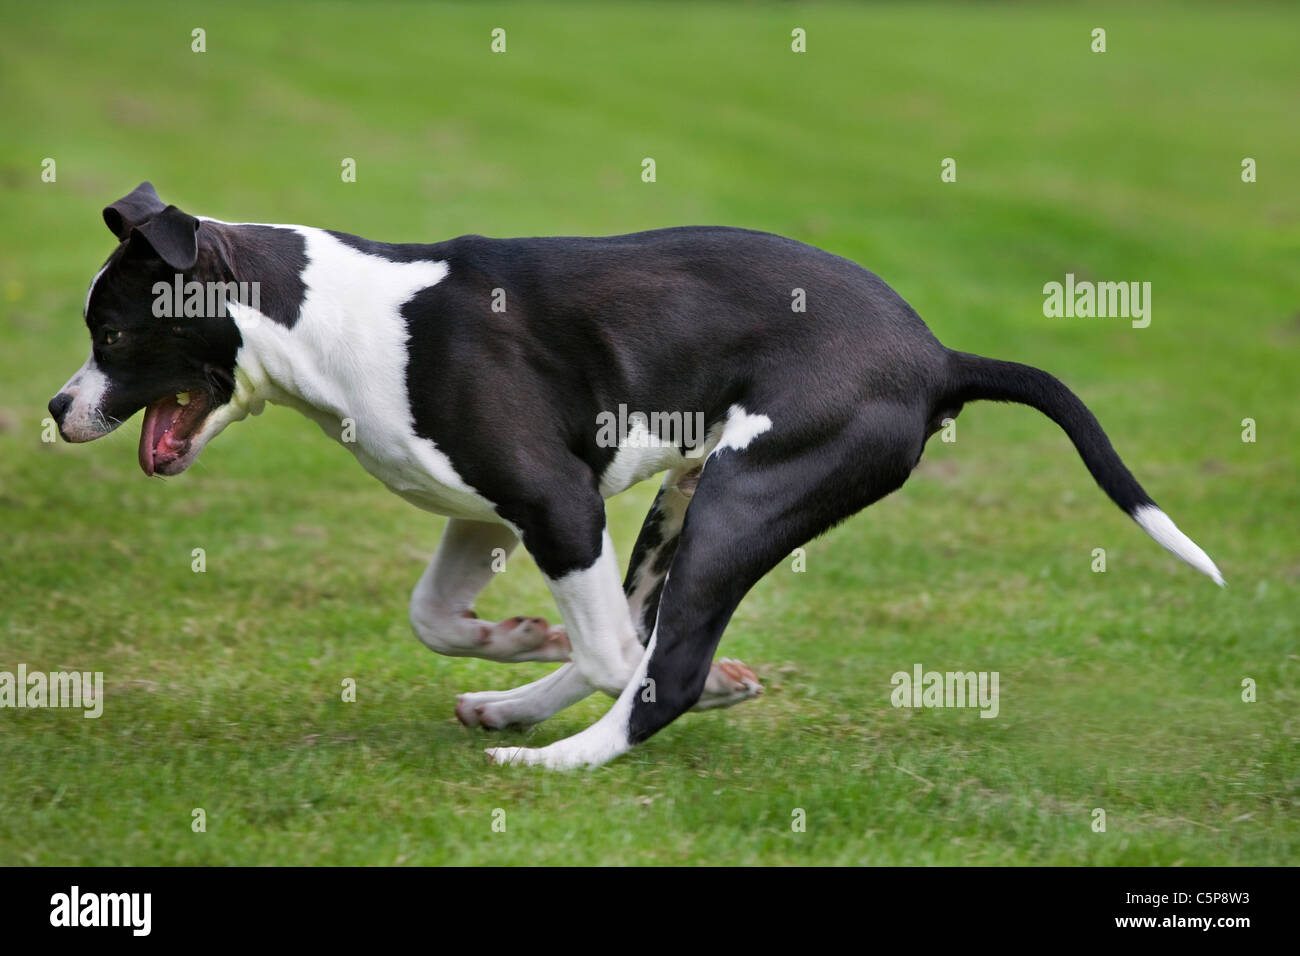 American Staffordshire terrier (Canis lupus familiaris) running on lawn in garden - Stock Image